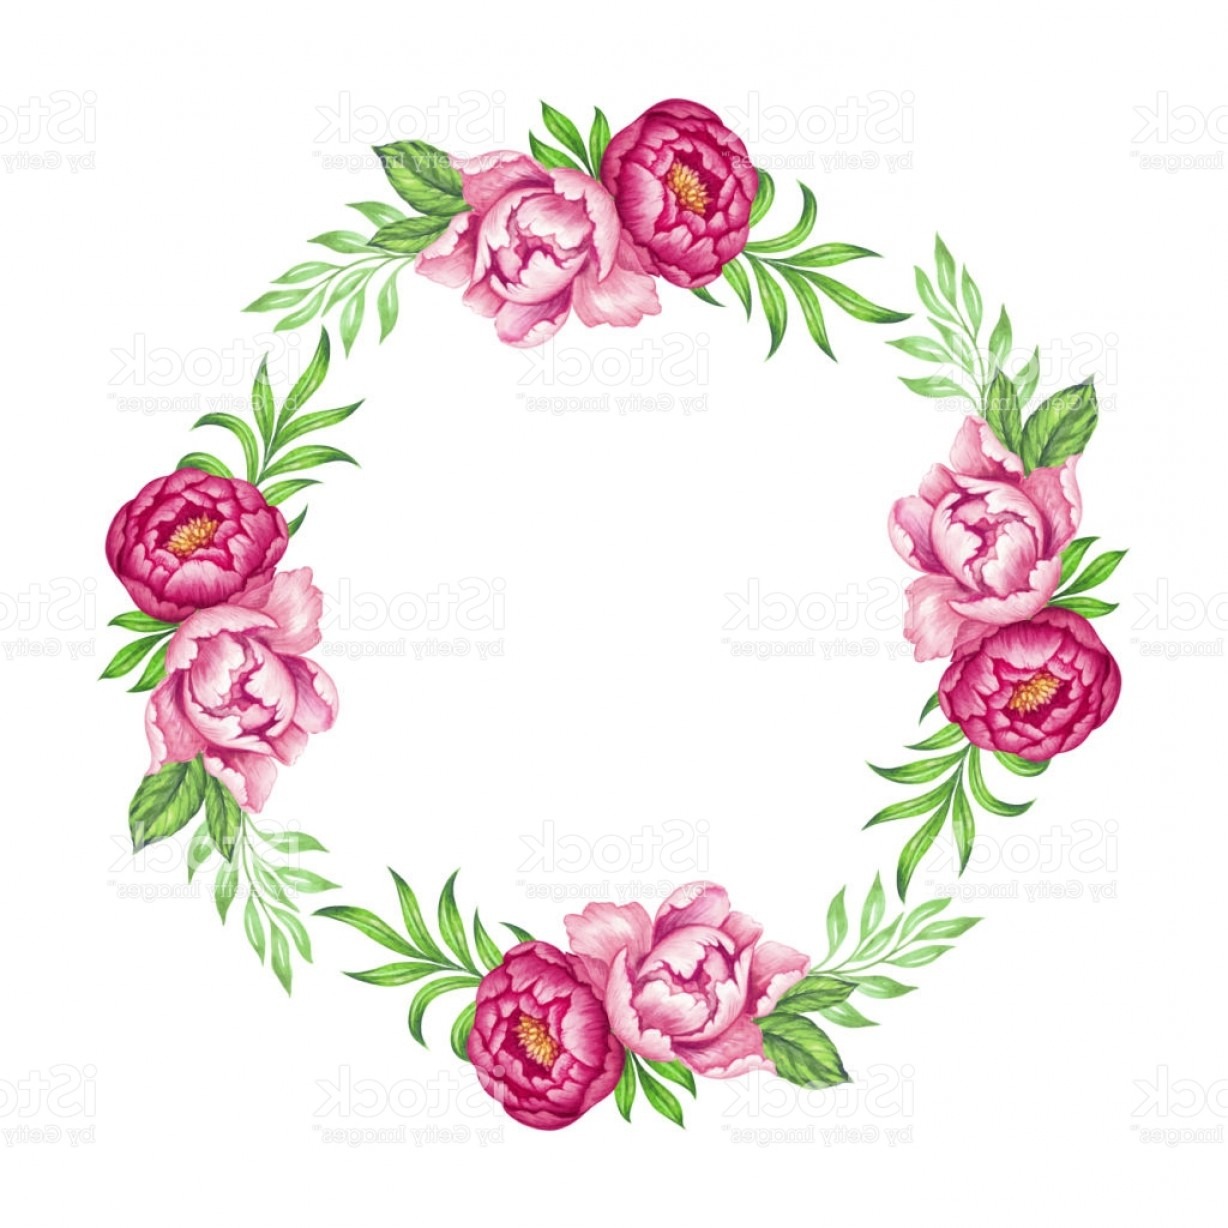 1228x1228 Fresh Pink Peony Round Wreath Rose And Green Leaves Watercolor